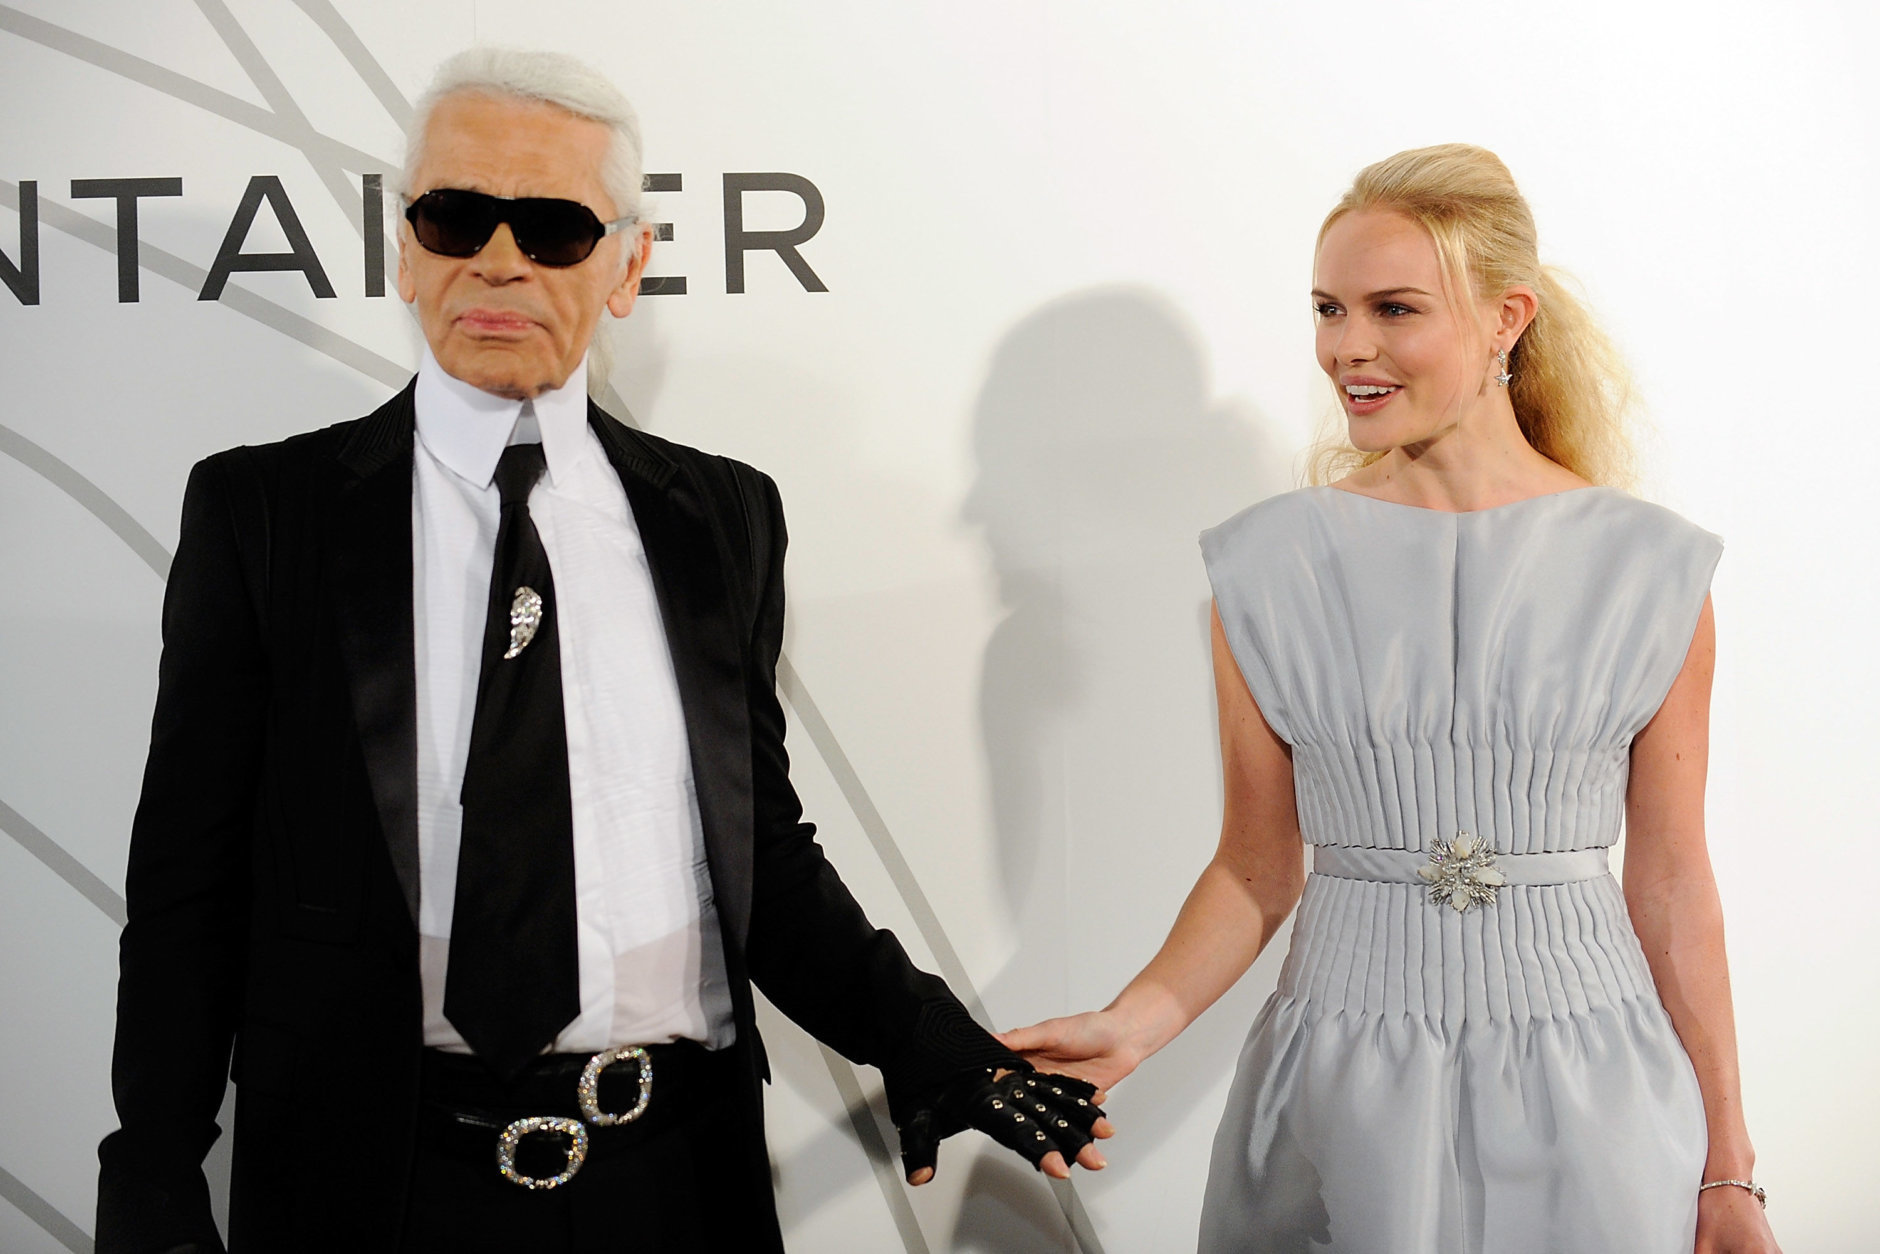 Chanel designer Karl Lagerfeld and actress Kate Bosworth attend the opening party for the mobile Chanel Contemporary Art Container in Central Park. on Tuesday, Oct. 21, 2008 in New York. (AP Photo/Evan Agostini)